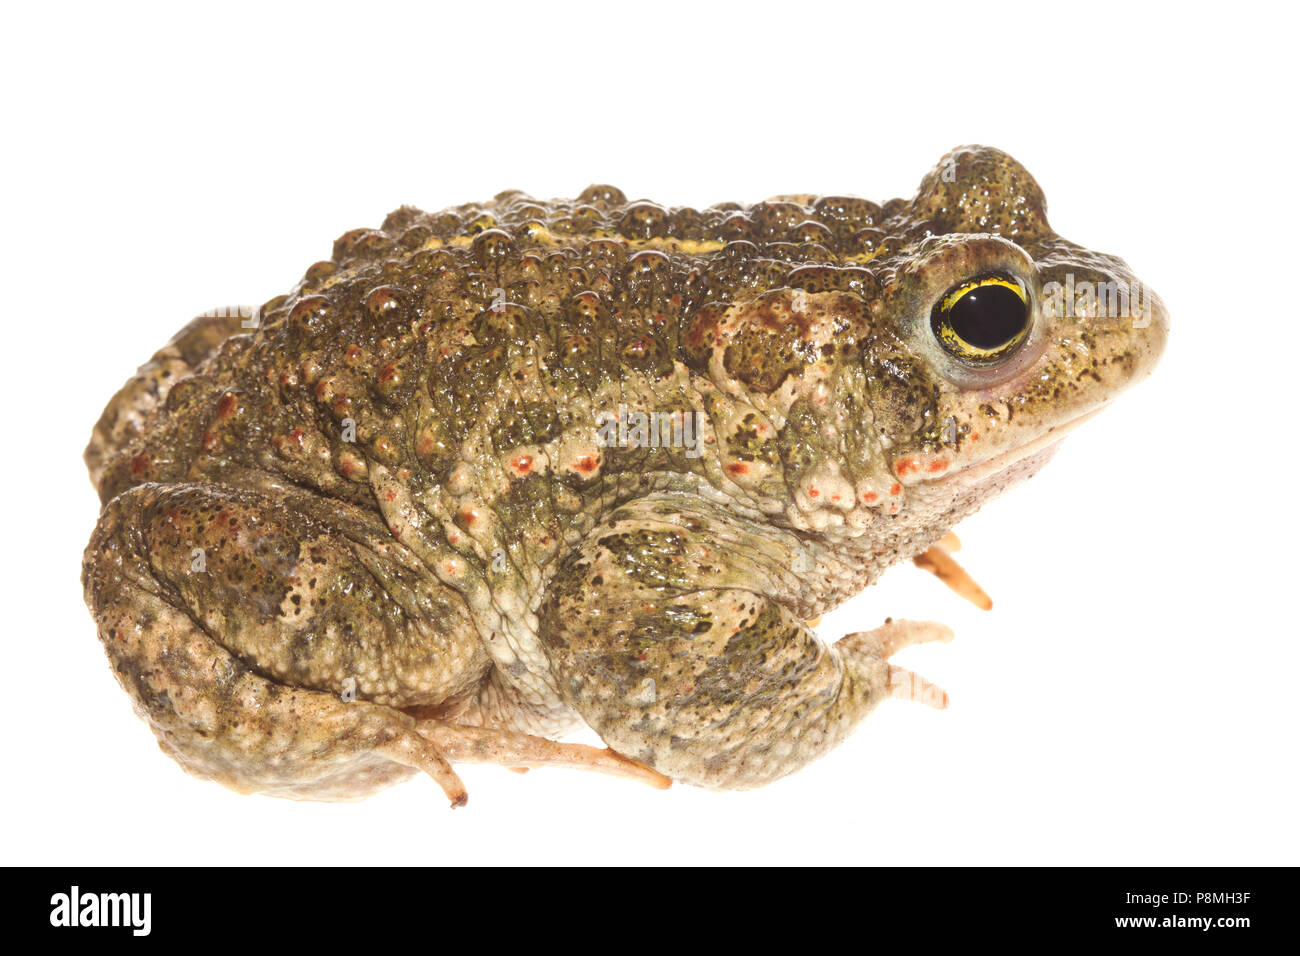 natterjack toad isolated against a white background - Stock Image